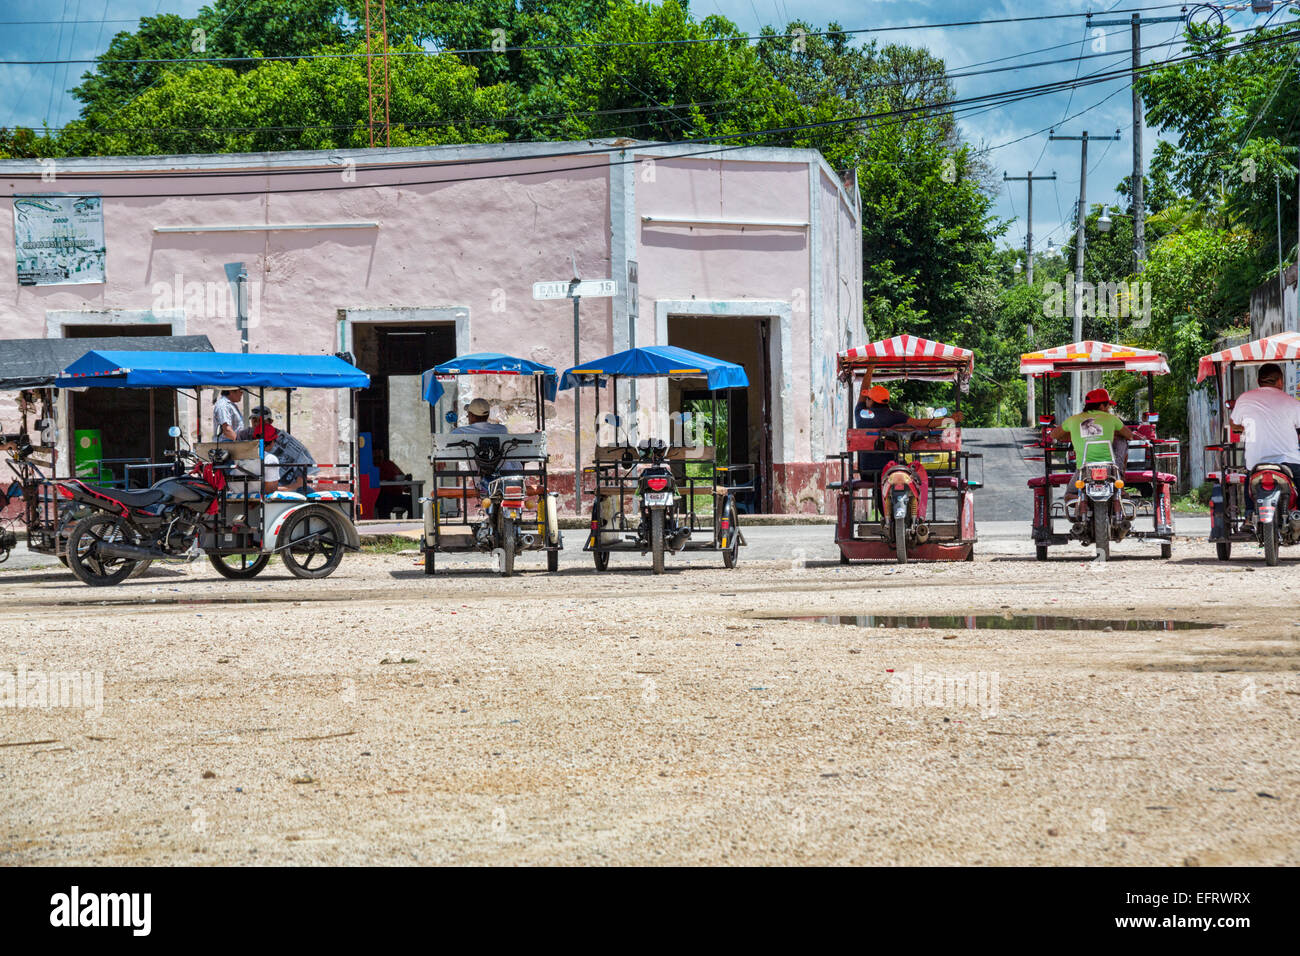 bike taxis parked in Yucatan Mexico - Stock Image